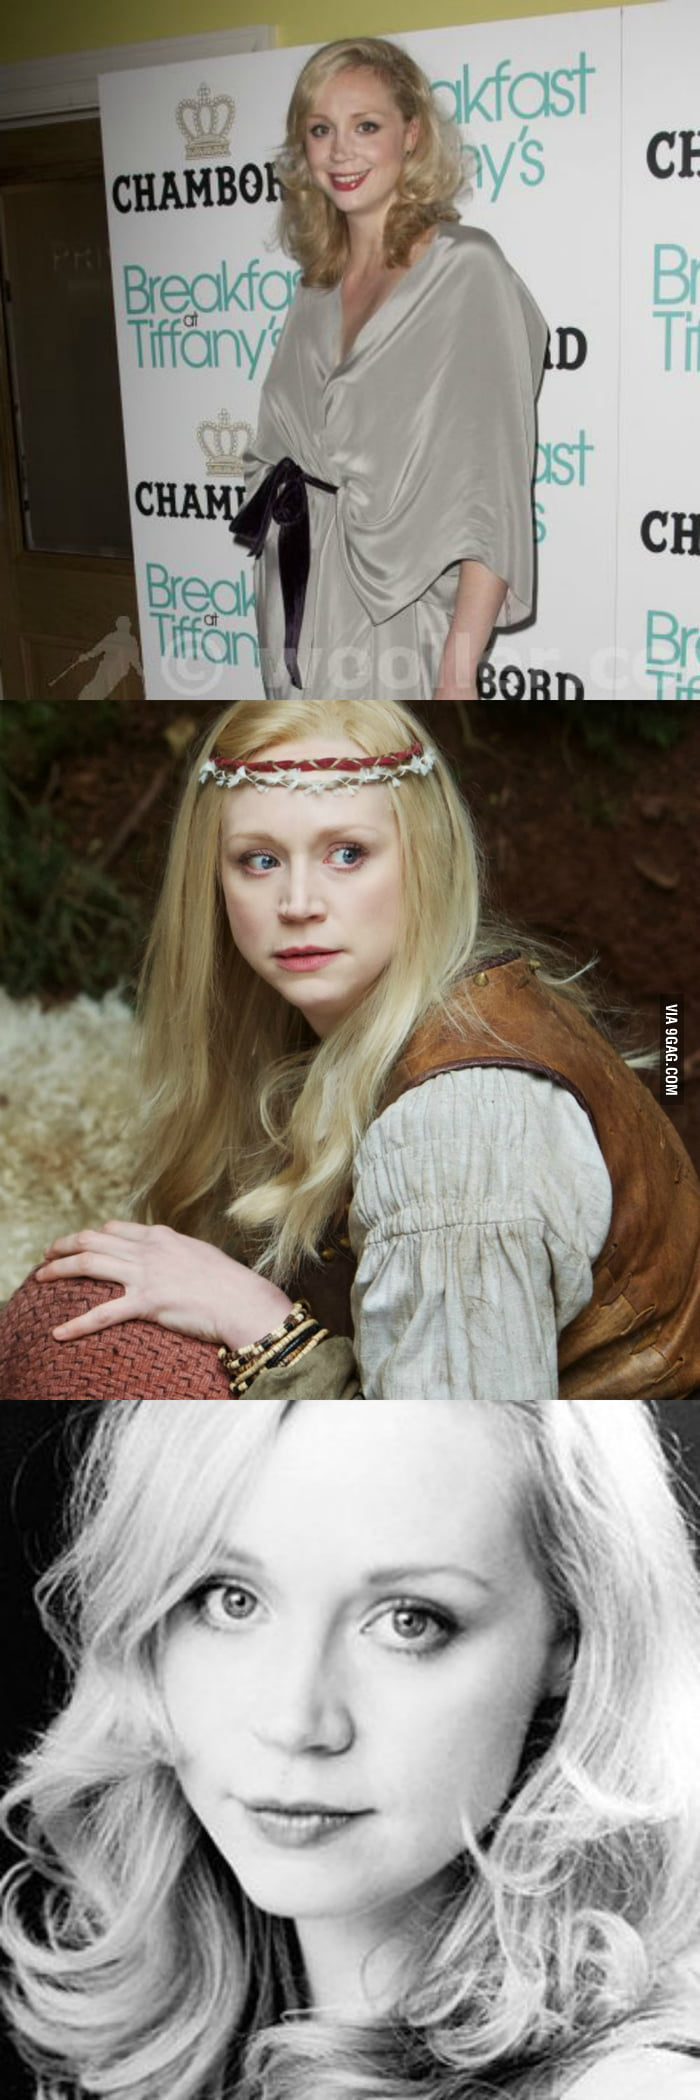 Gwendoline Christie Nude Pictures pertaining to gwendoline christie (brienne from got) with long hair! - 9gag